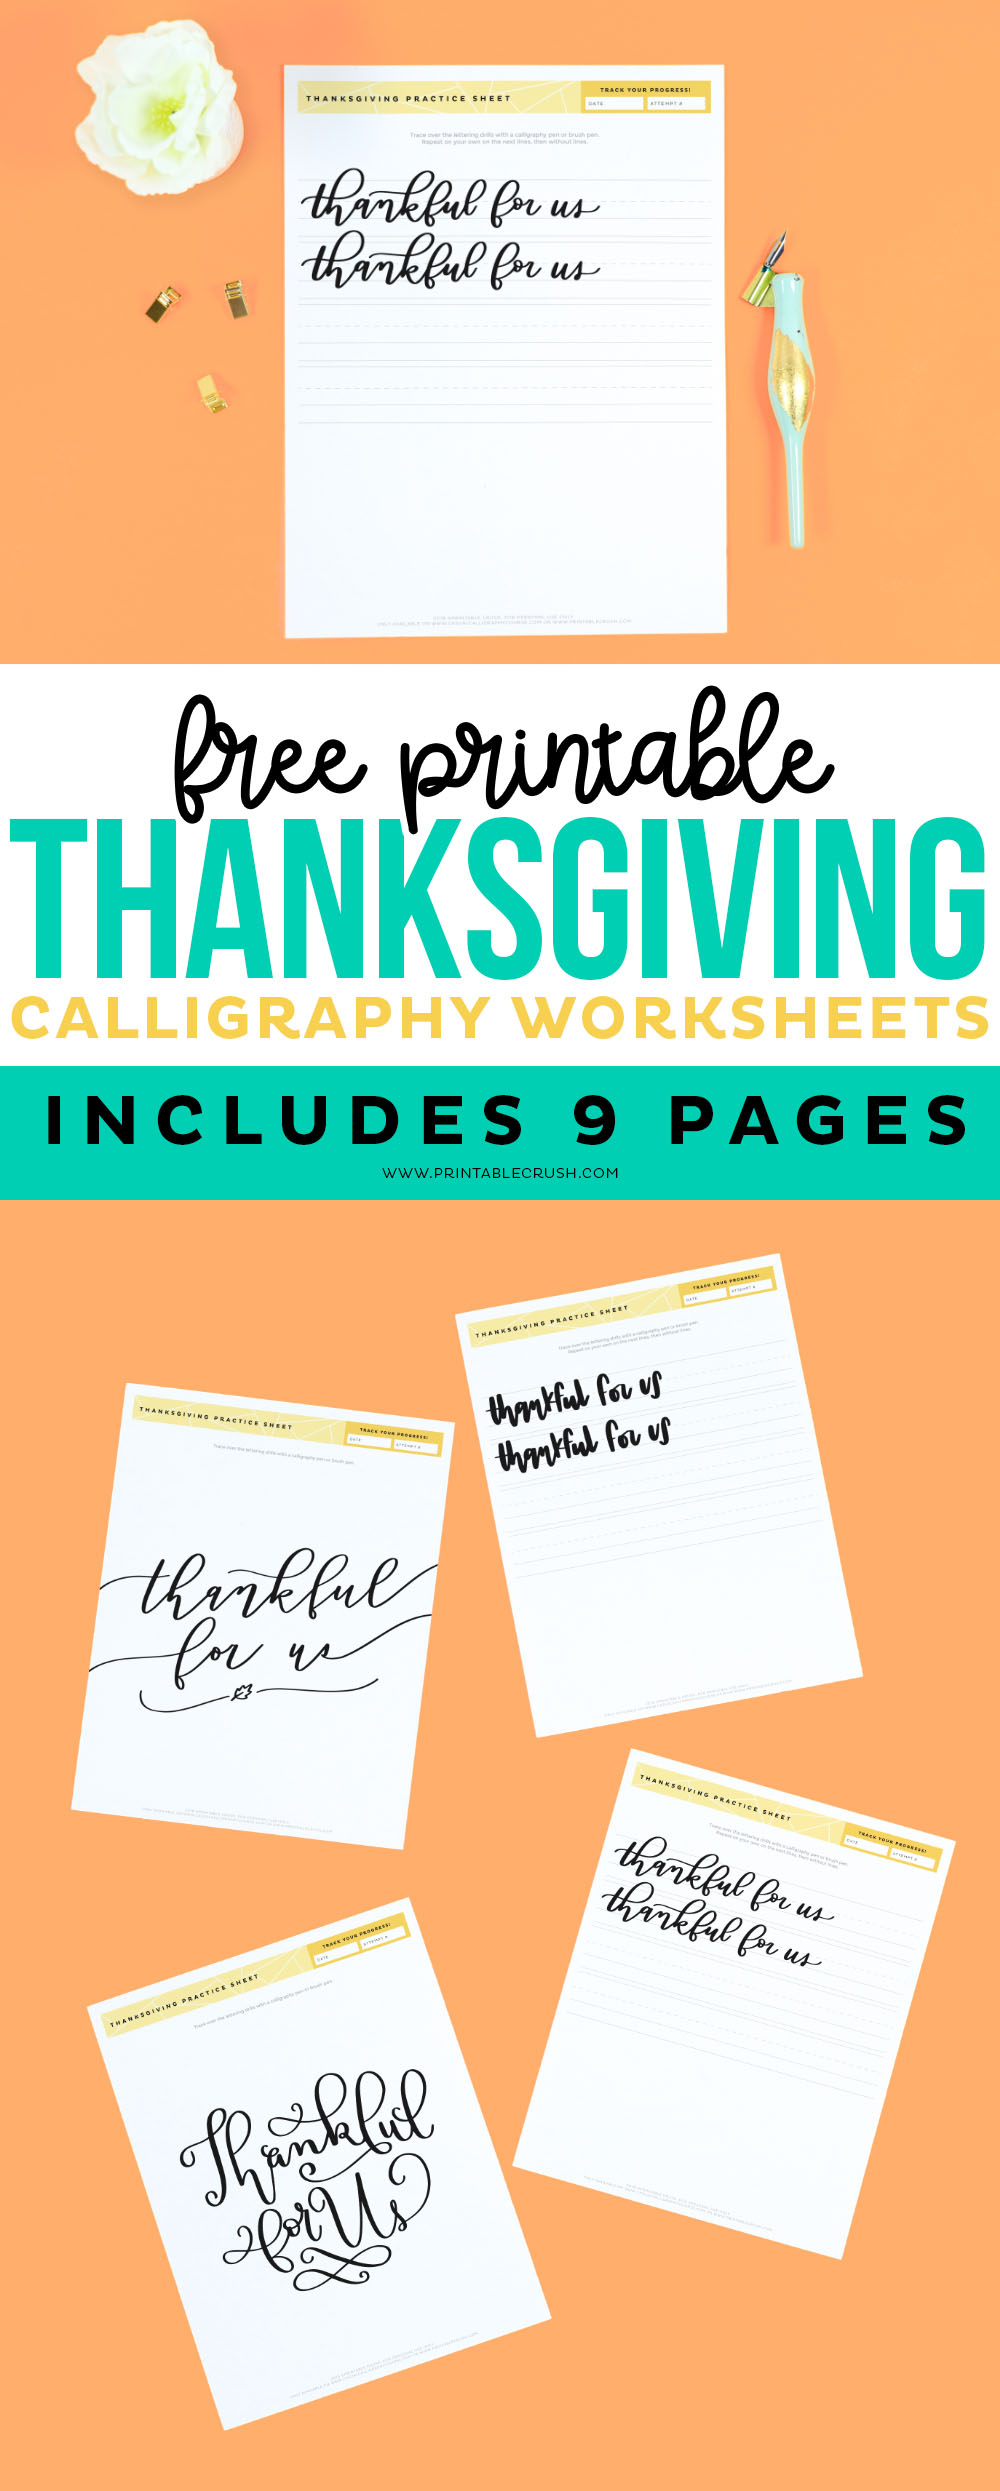 Free Thankful for Use Calligraphy Worksheets - Thanksgiving Hand Lettering - Printable Crush